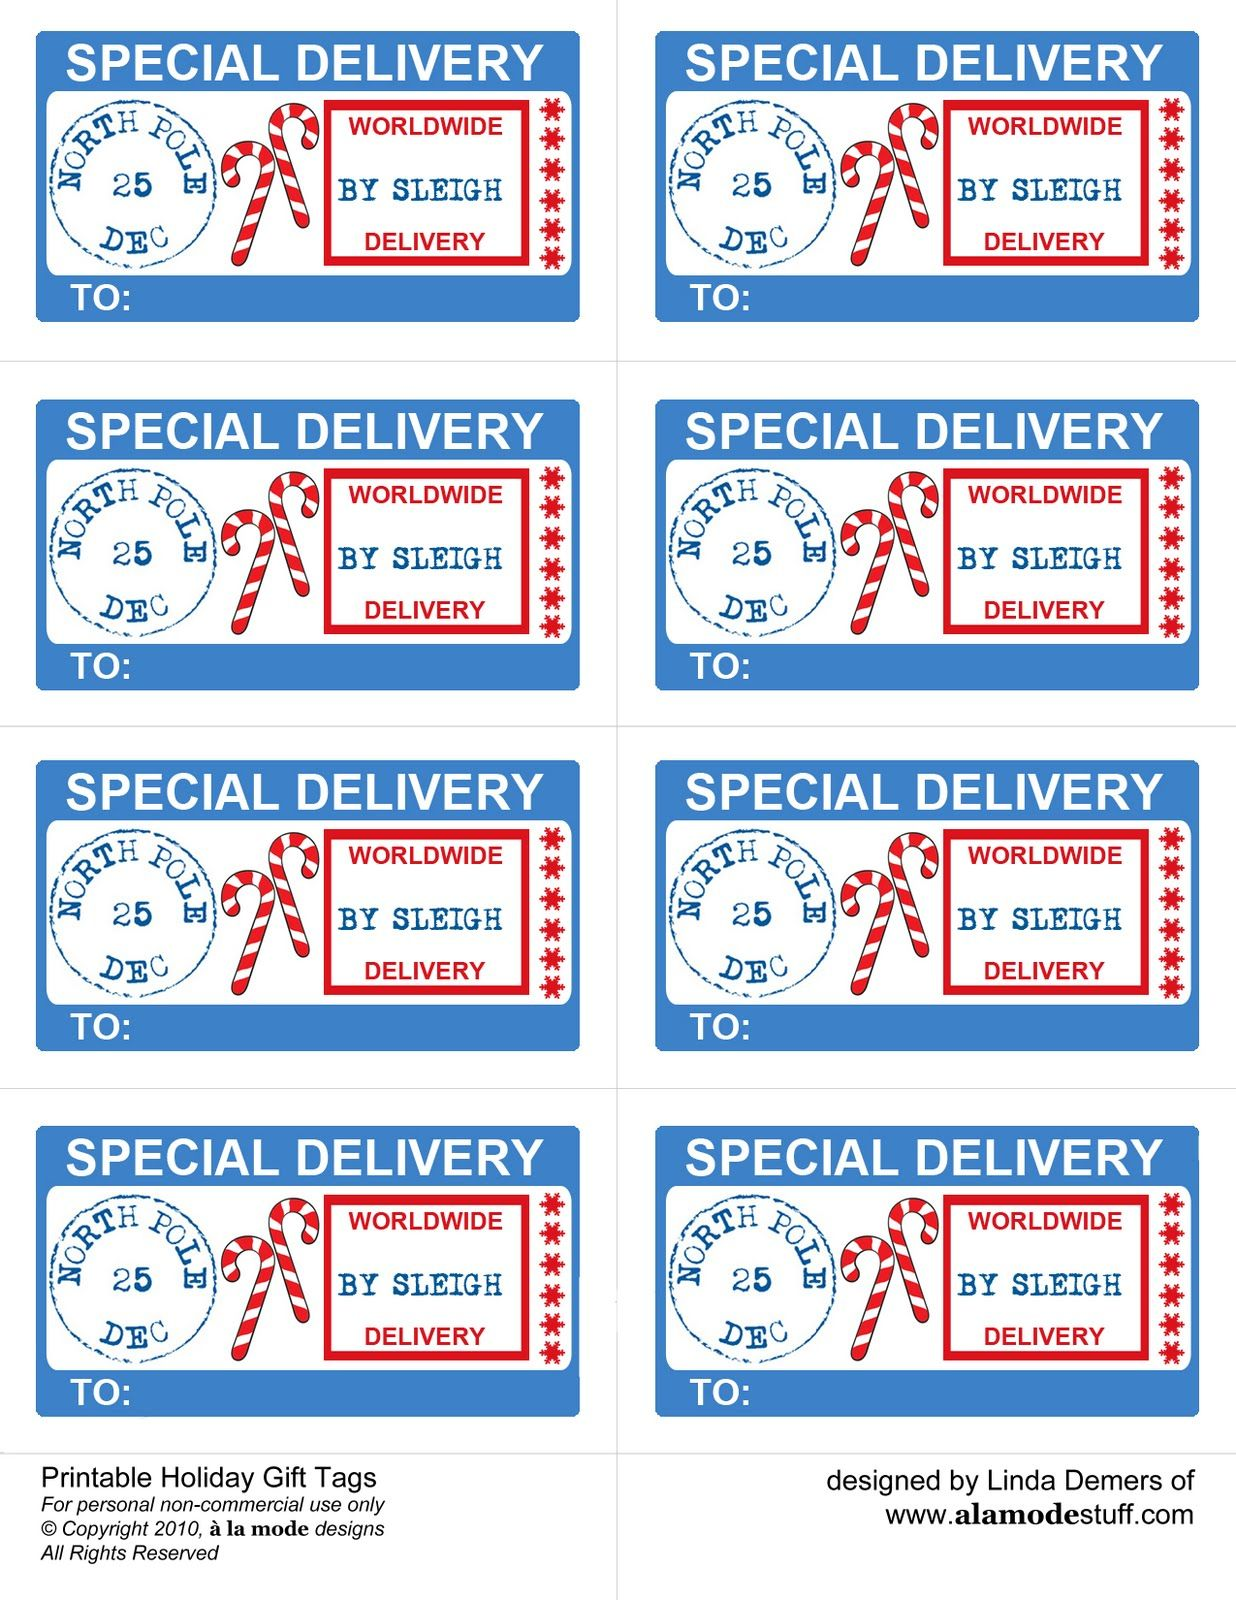 Special delivery tags from santa pinteres special delivery tags from santa more spiritdancerdesigns Choice Image